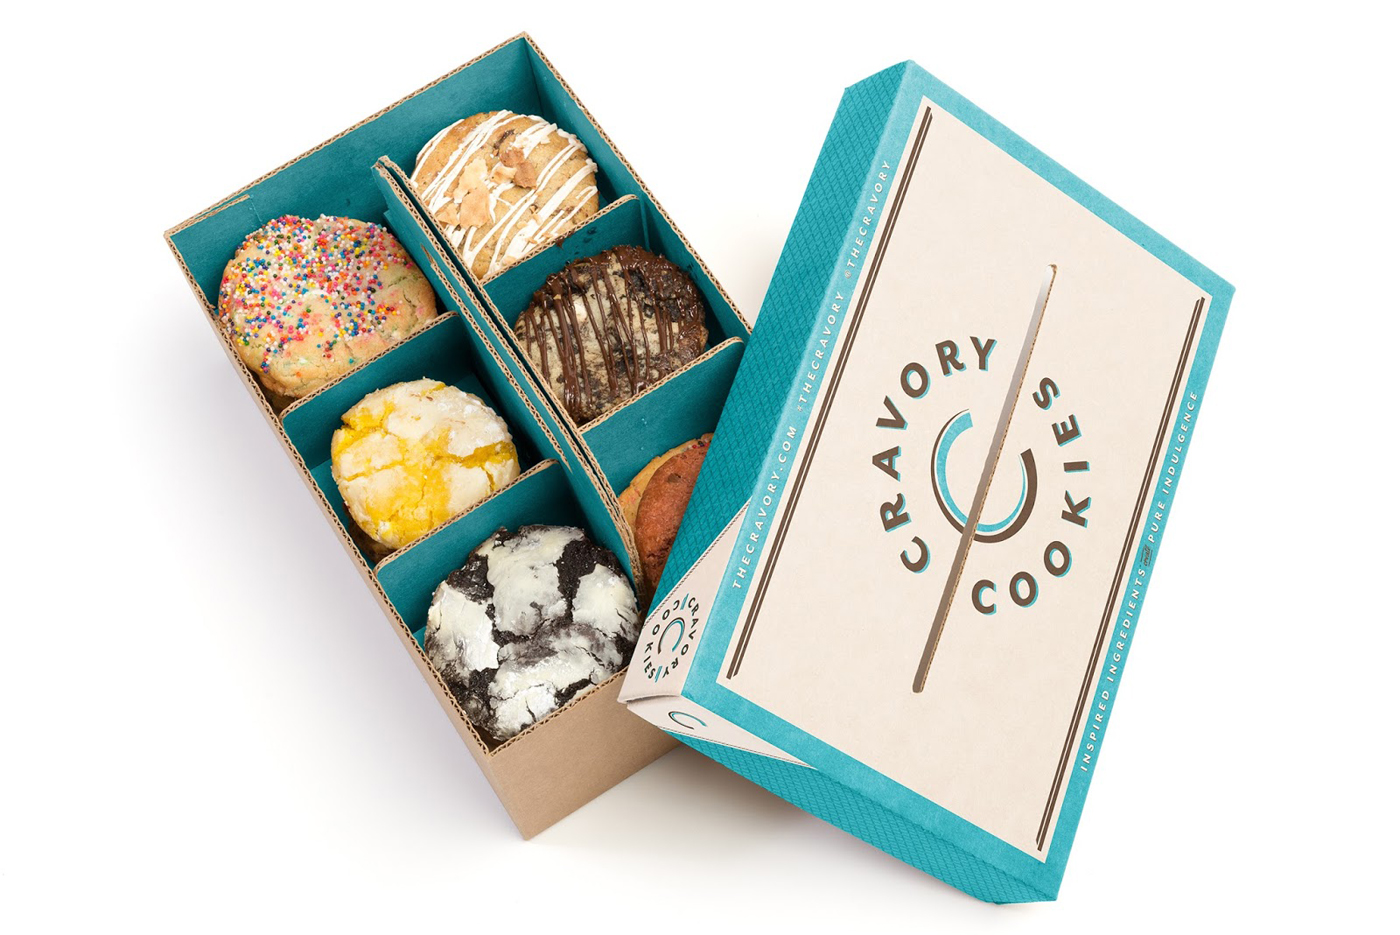 Best food subscription boxes perfect for last-minute holiday gifts: Cravory Cookies | Cool Mom Eats holiday gift guide 2017